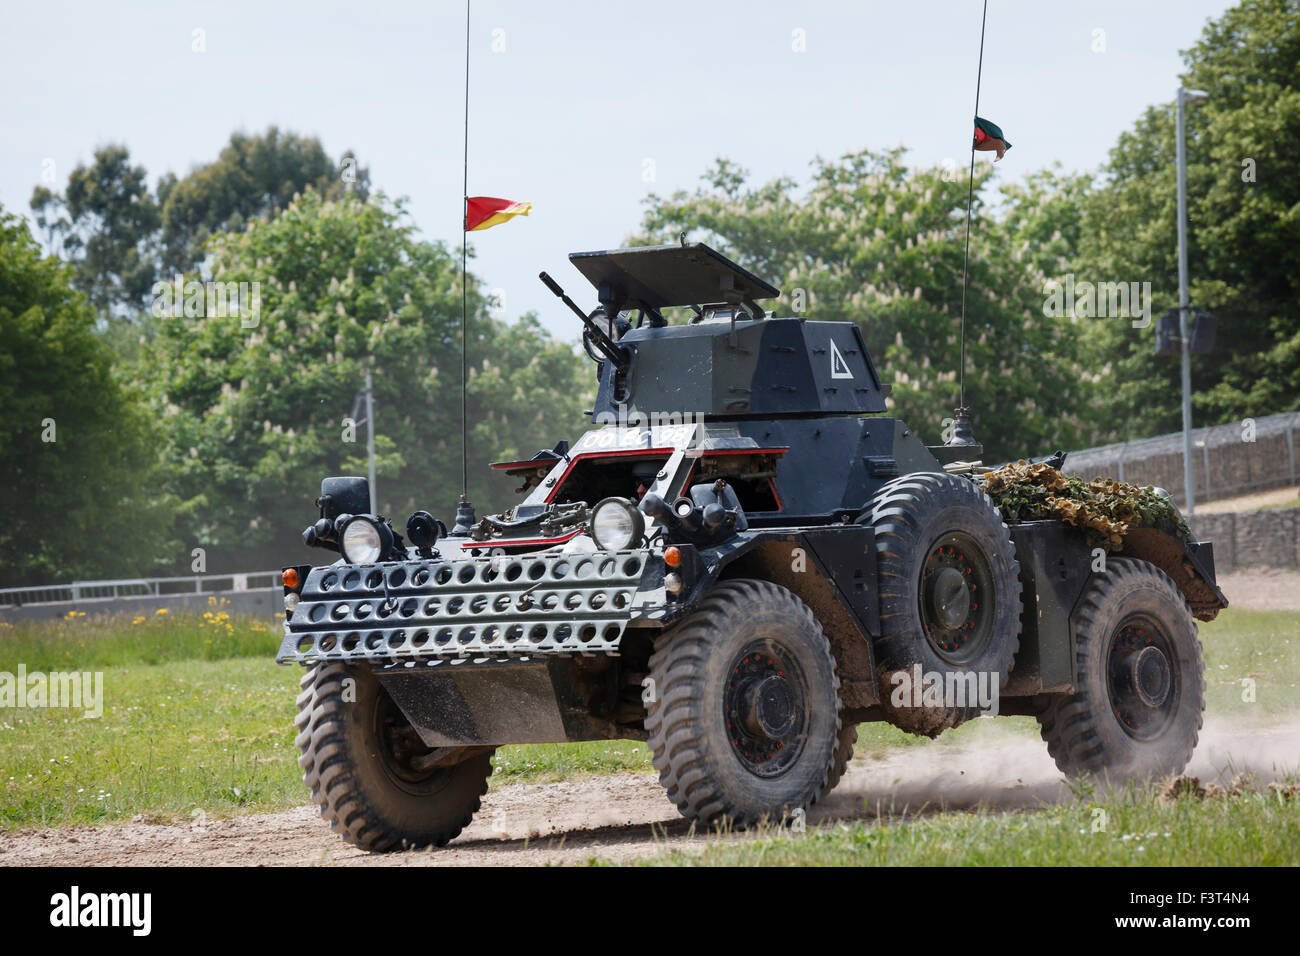 Ferret MkII Scout Car, The Tank Museum, Bovington, Dorset - Stock Image